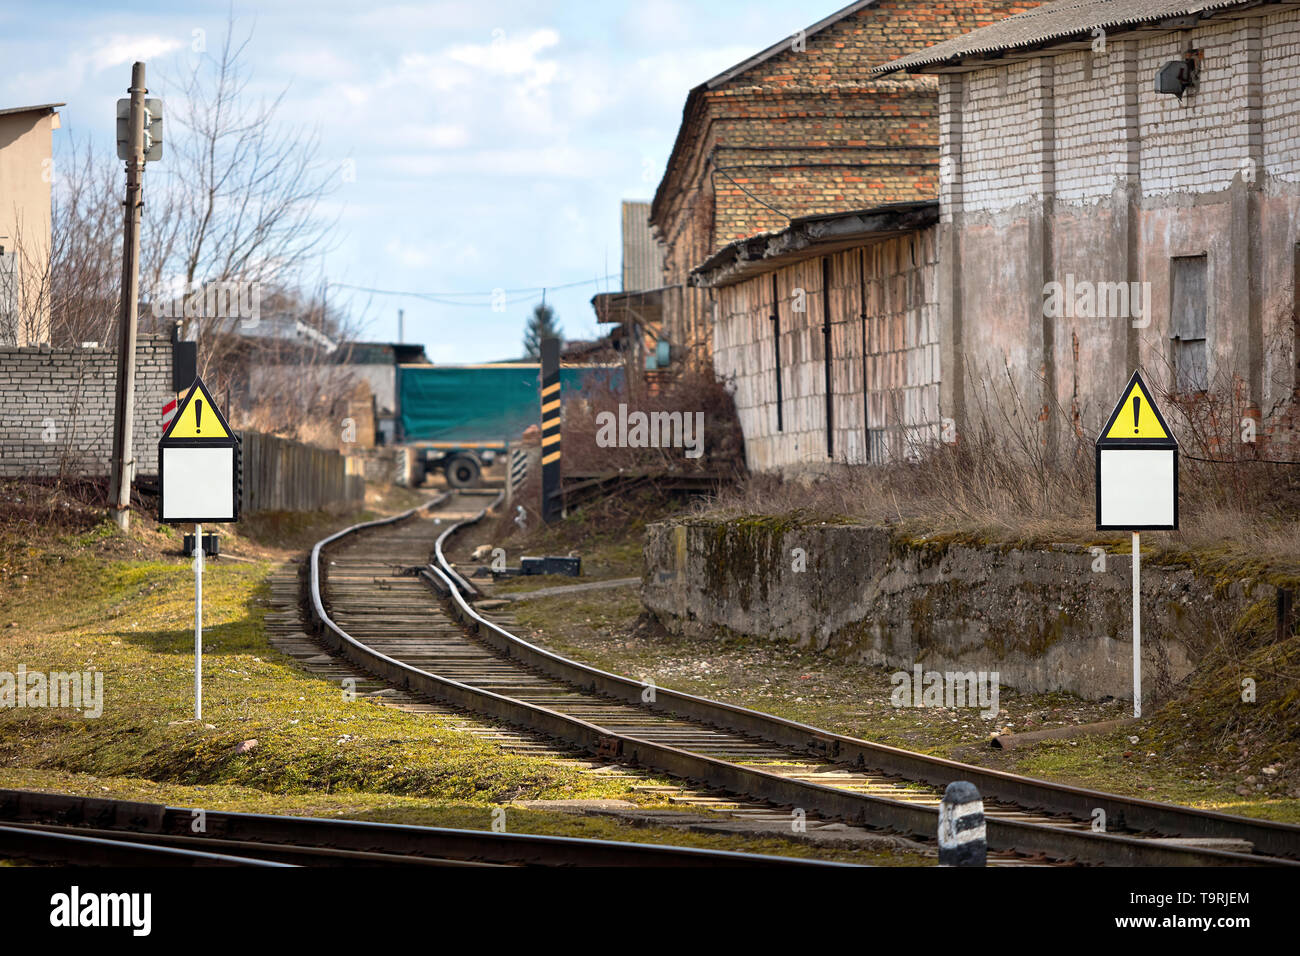 Triangular road sign mockup at railway line warning about damaged rail section and oversized narrow passage for trains. - Stock Image